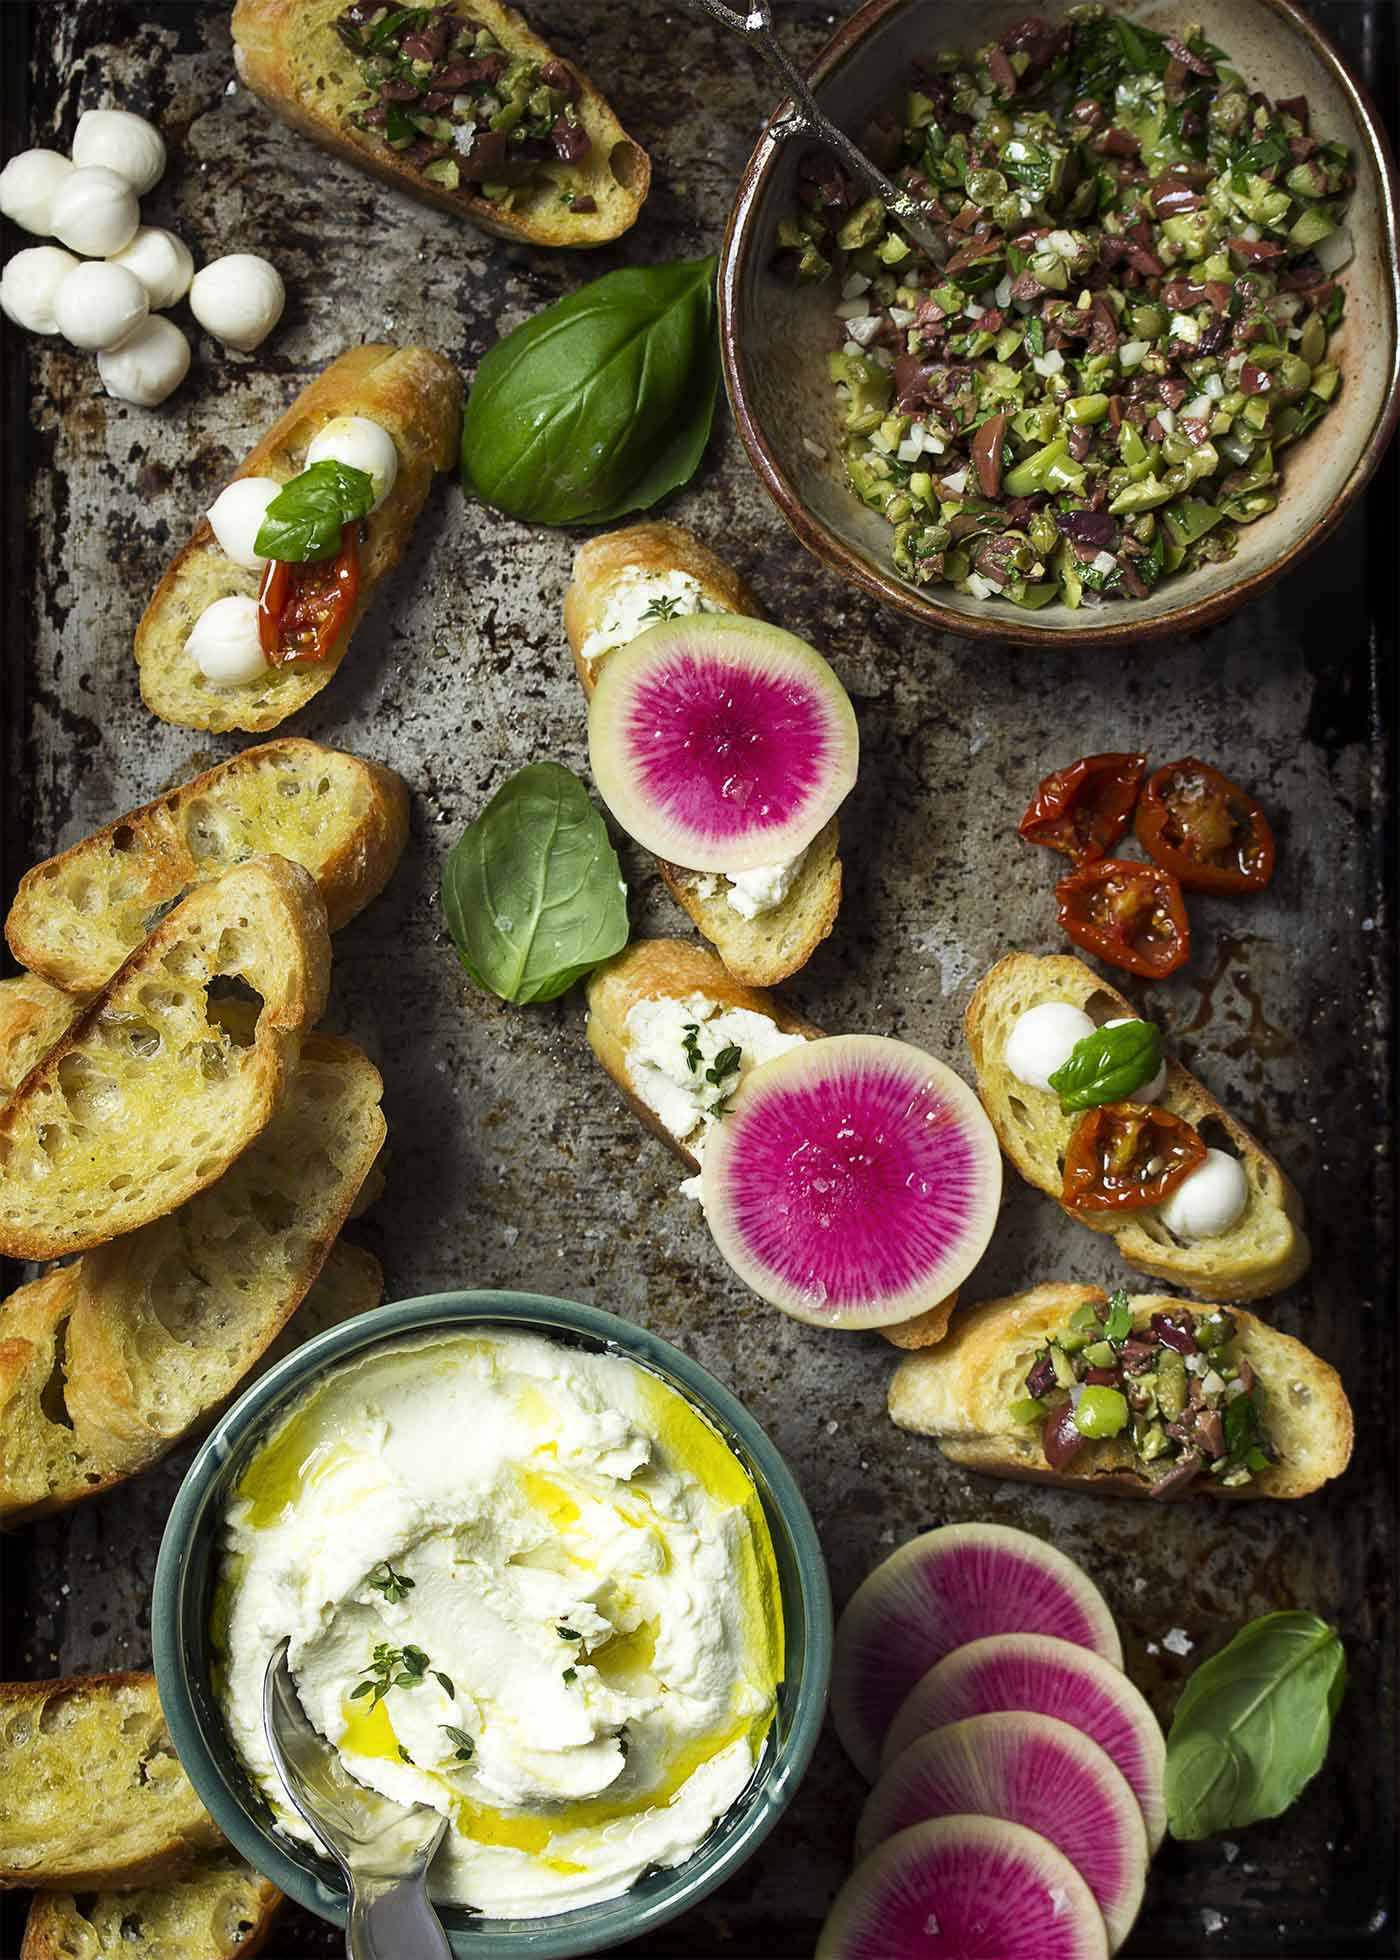 Top view of a tray of crostini, topped and plain along with bowls of spreads.